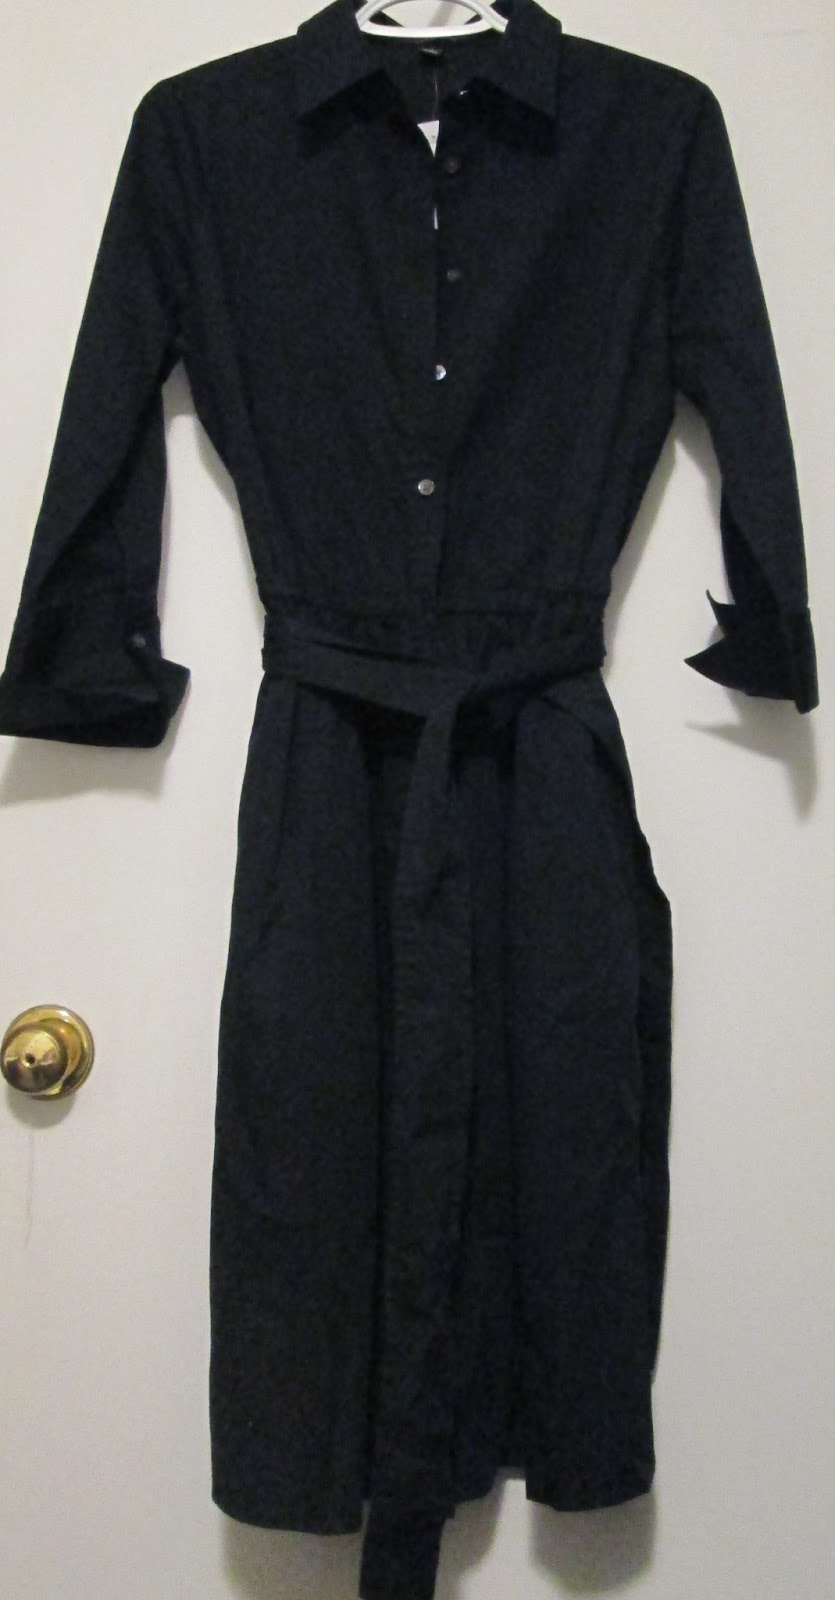 """Old Navy Mens Large TALL Dark Gray Long-sleeve T-shirt - Modern Slim Fit, % Cotton, machine wash/dry, made in Vietnam. Measurements taken while the garment was laying flat and shown in photos – chest 44"""", hem 44"""", top of sleeve is 27"""", the total length from shoulder to hem is 31""""."""